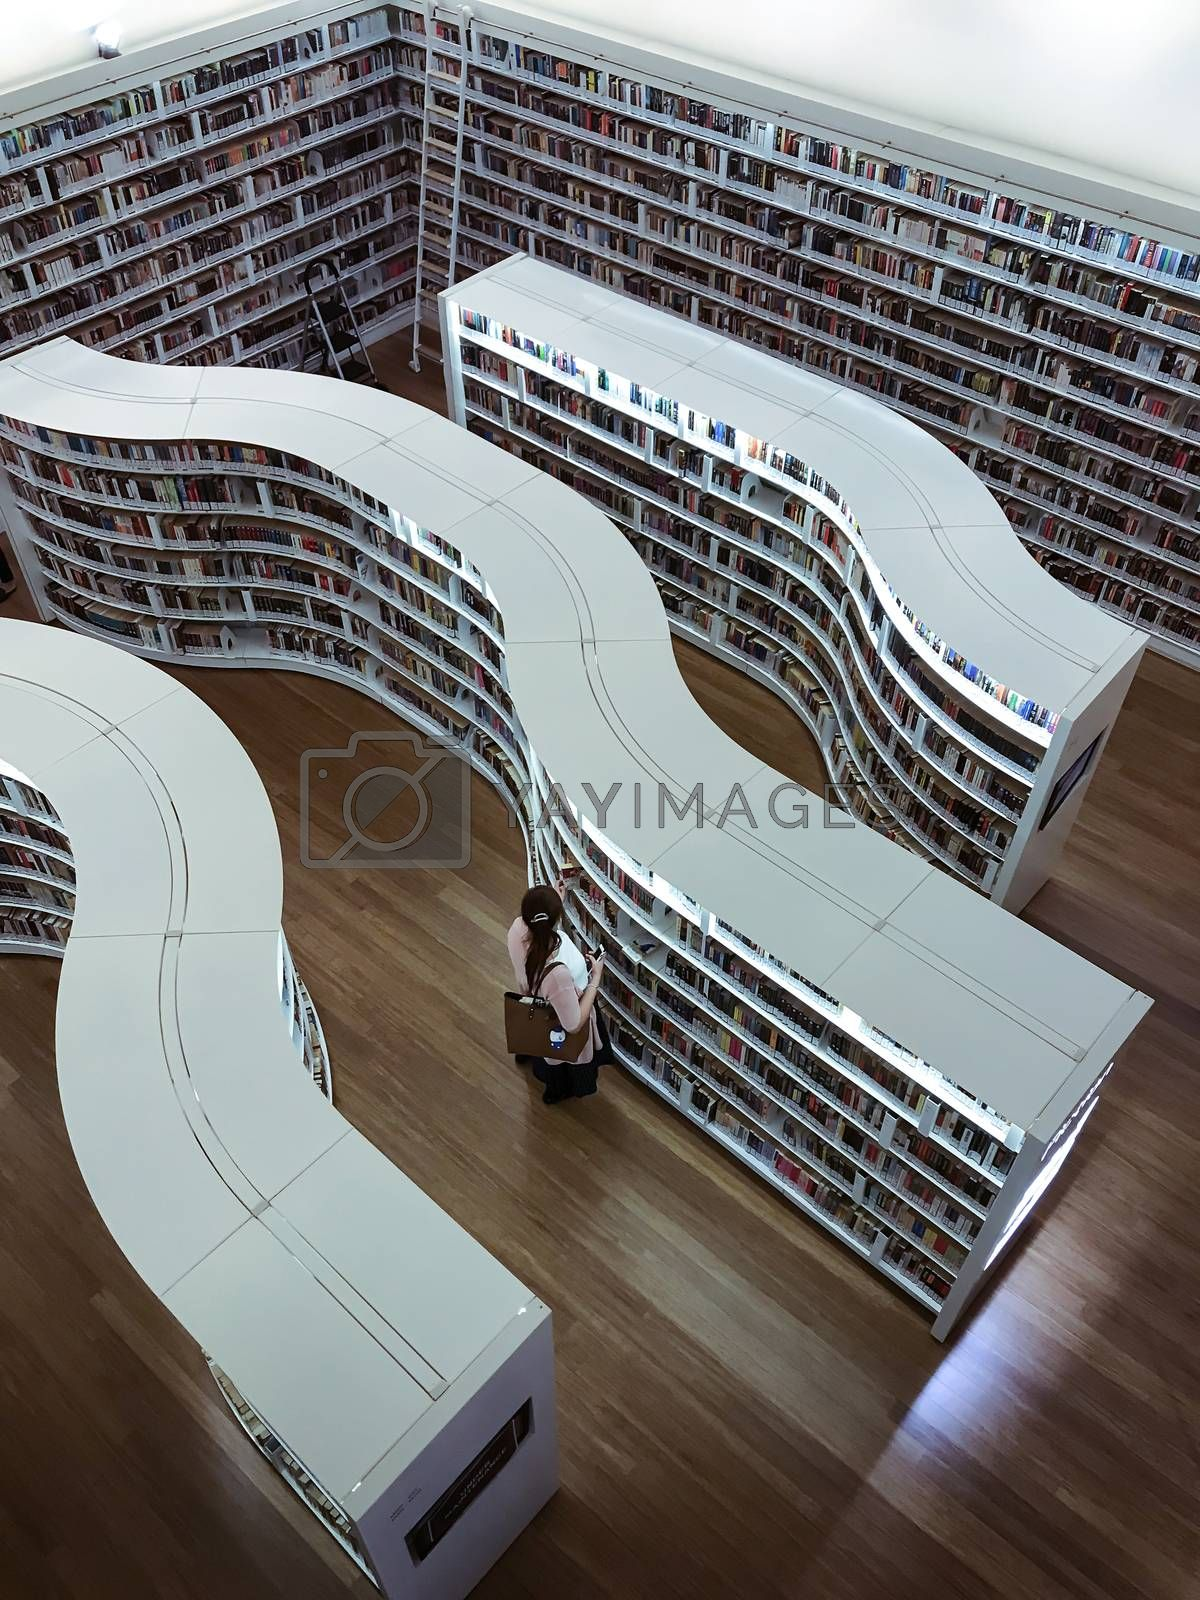 Modern looking layout in Library at Orchard. The place is next generation library with cozy and quiet ambiance located at Orchard Gateway near Somerset MRT Station in Singapore